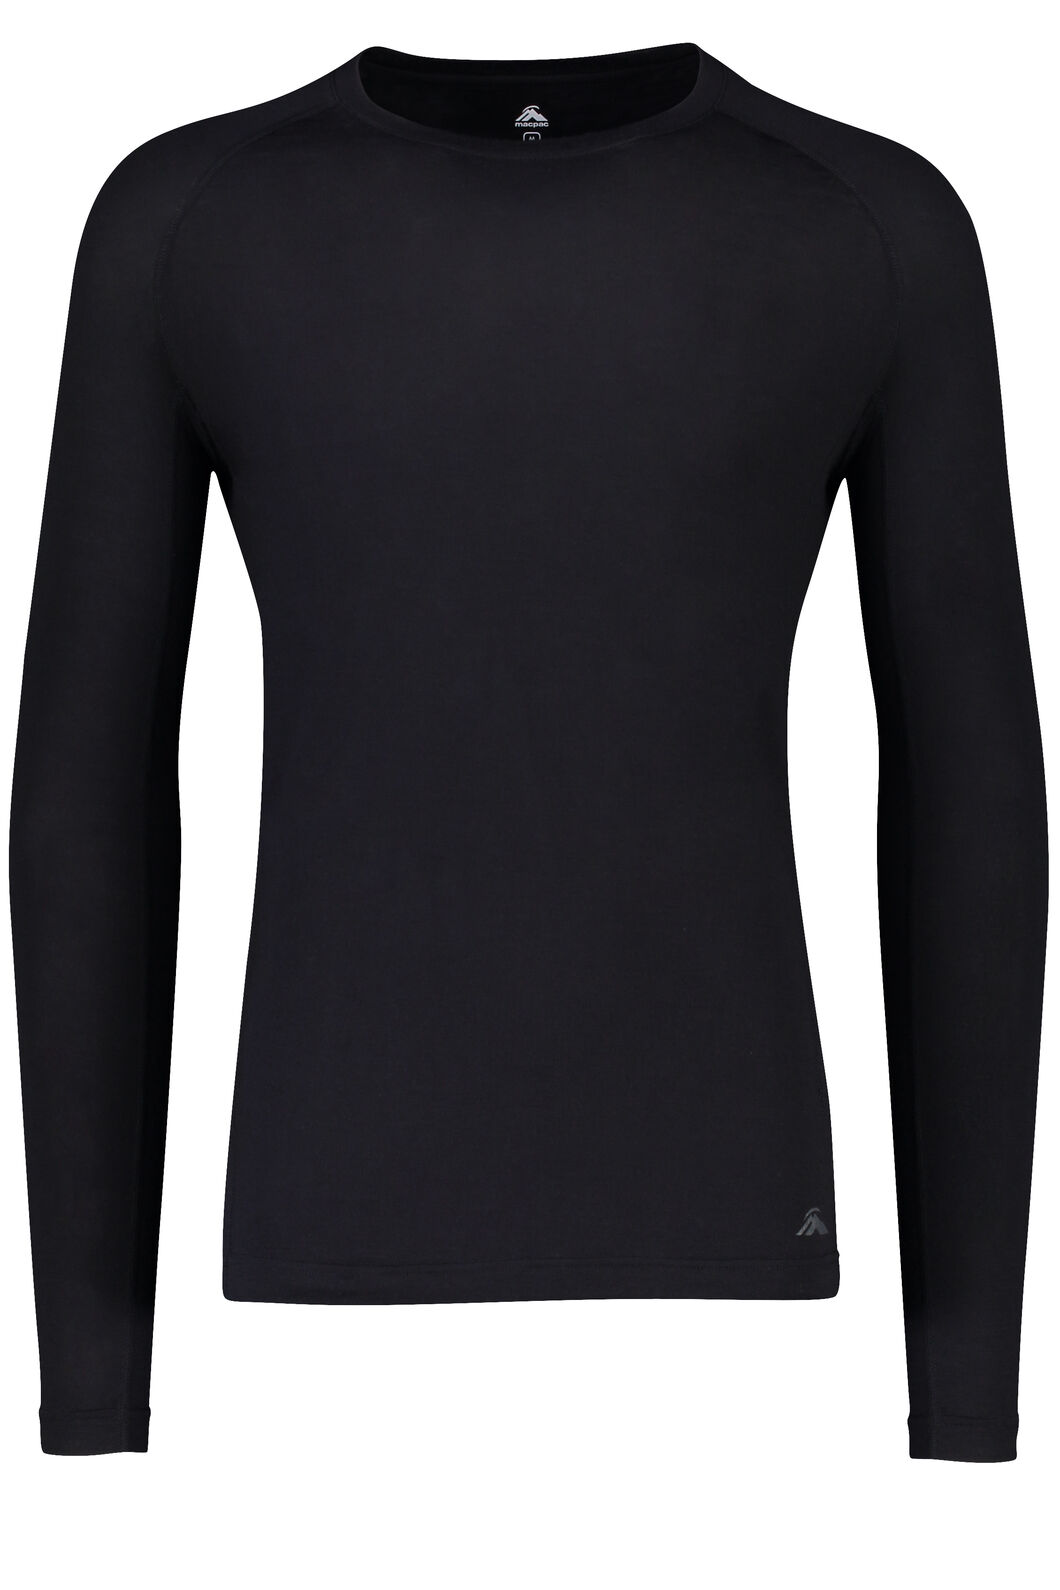 Macpac 150 Merino Long Sleeve Top - Men's, Black, hi-res